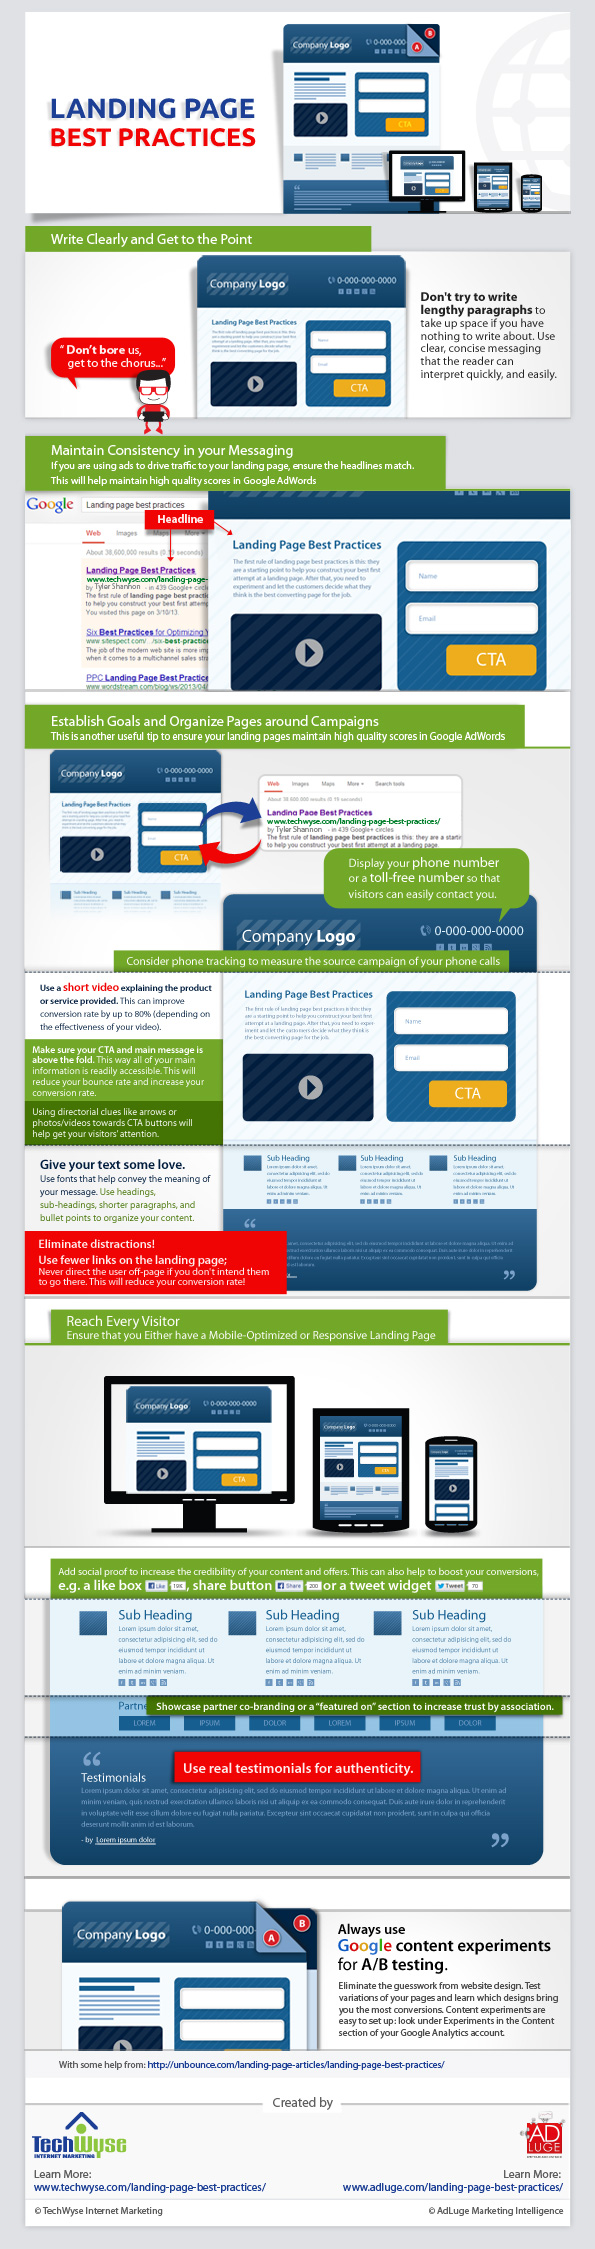 infographics-landing-page-best-practices-595